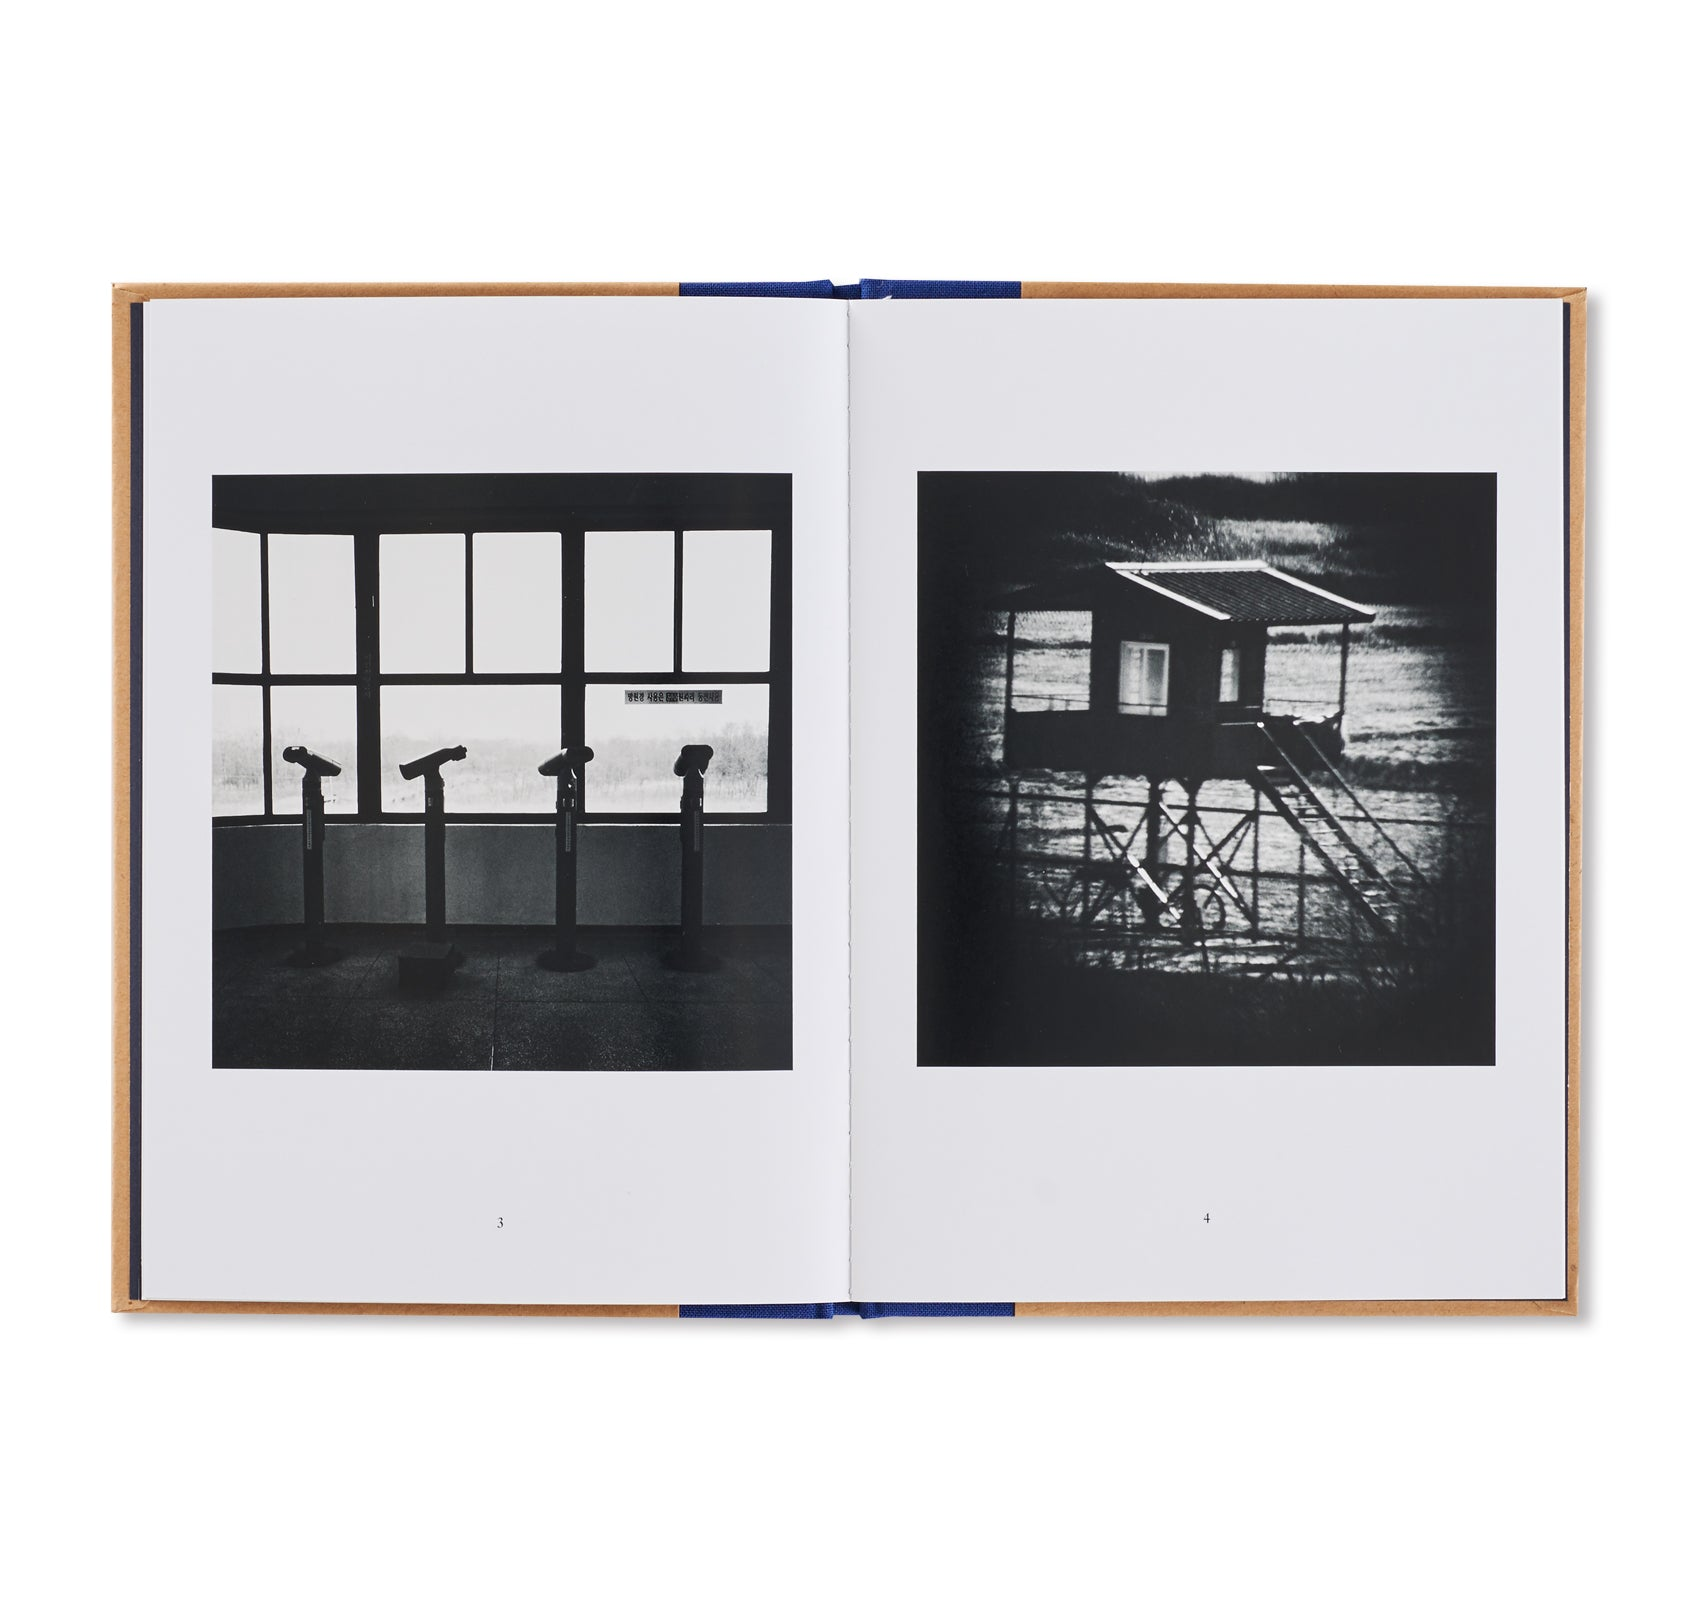 ONE PICTURE BOOK TWO #1-4 by Michael Kenna, Betty Hahn, Carrie Mae Weems & Tony Mendoza